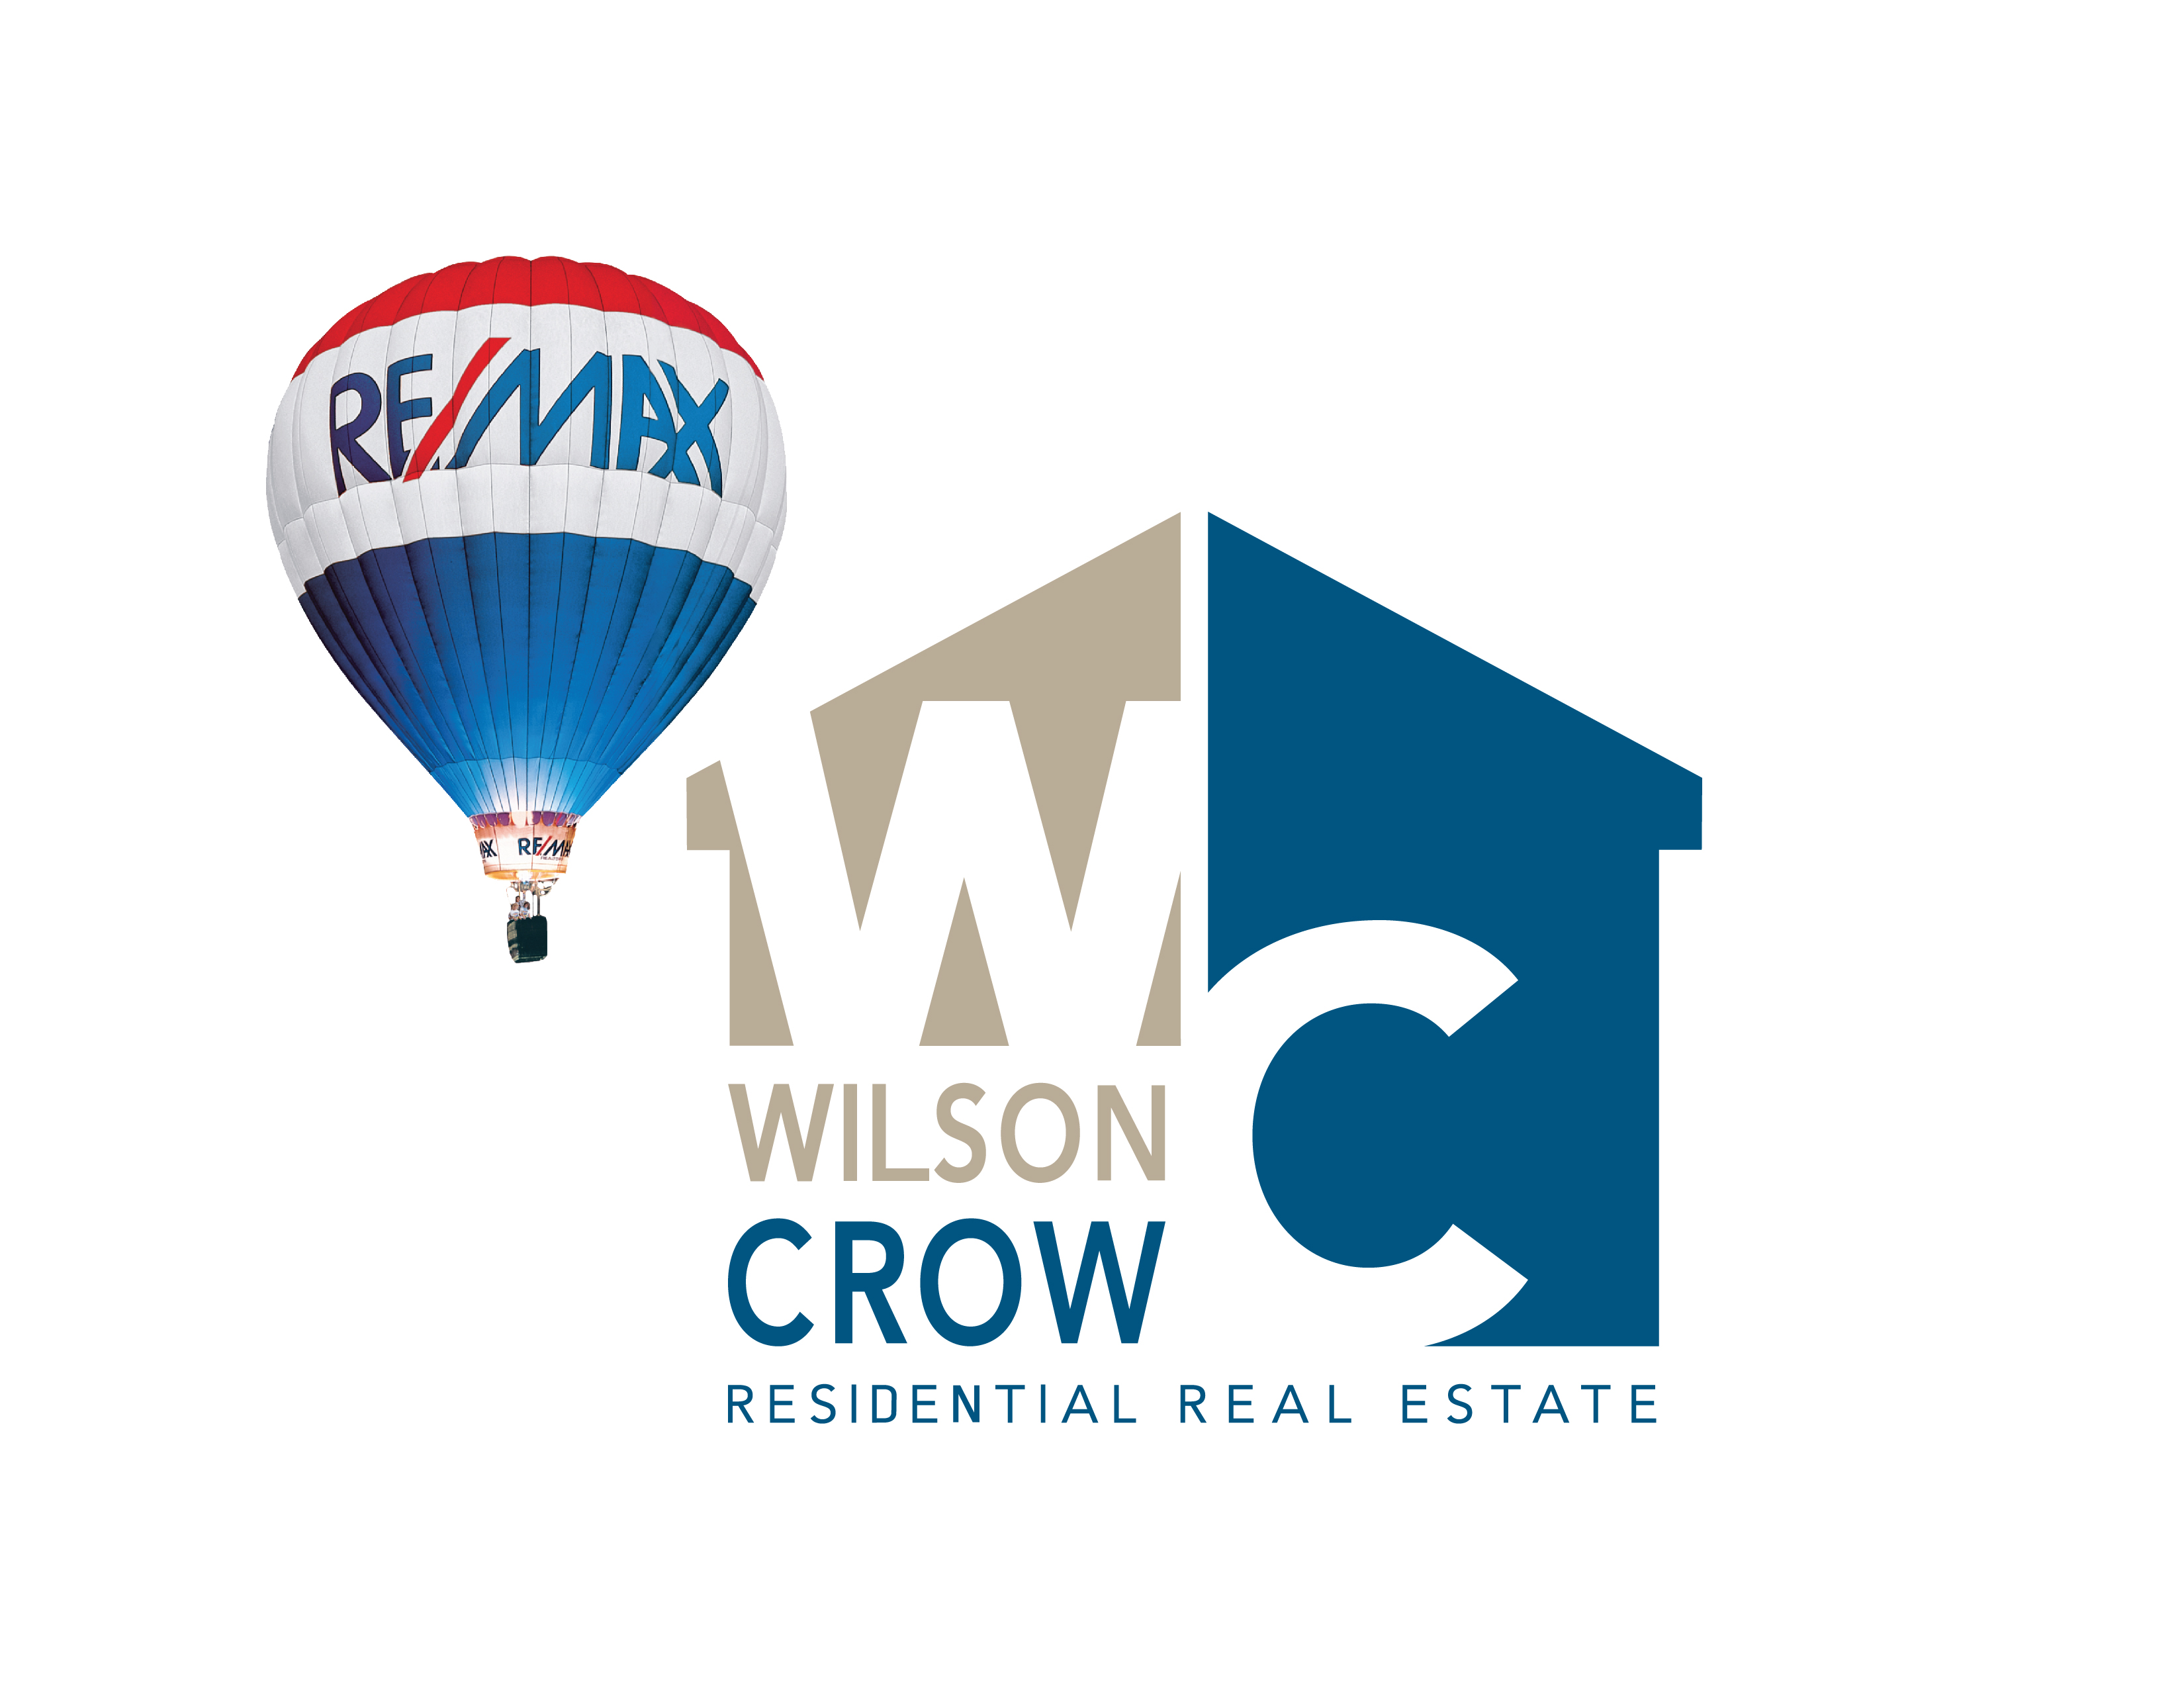 Wilson Crow, Realtor- Specializes in Inside the Beltline and Raleigh, NC Homes for Sale